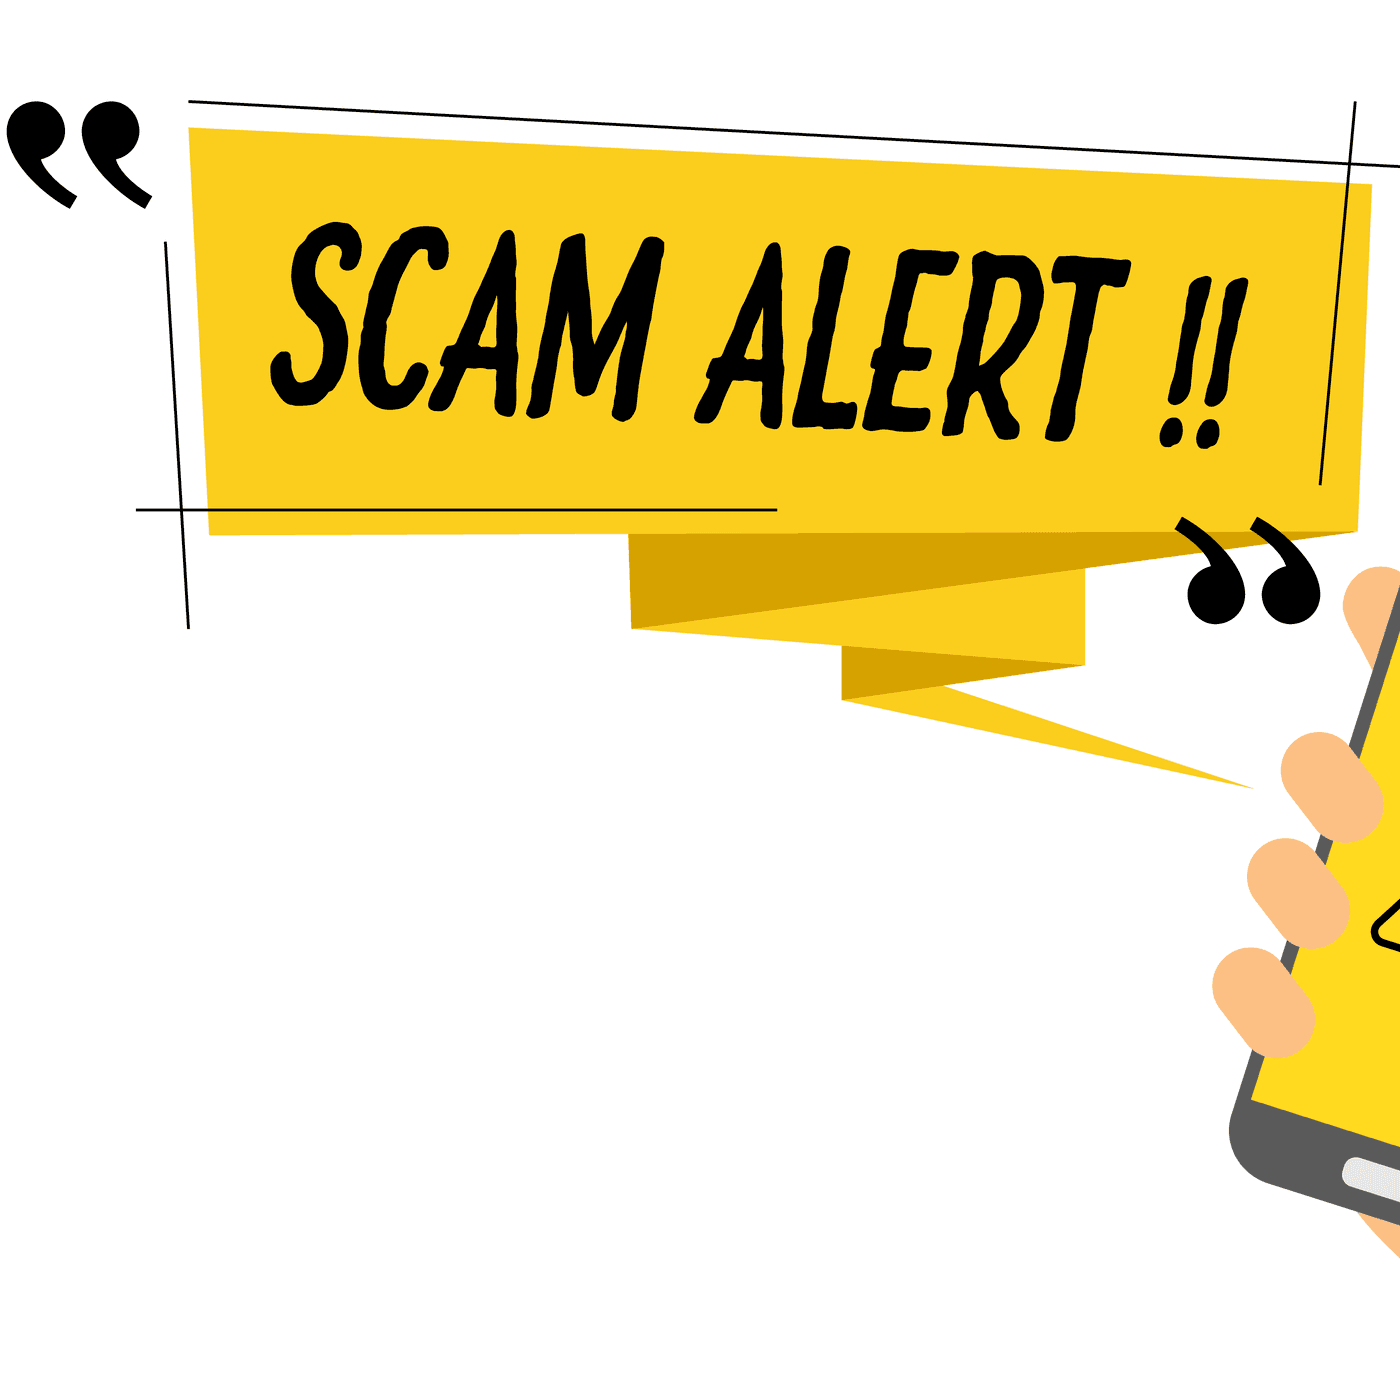 """Scam Alert"" in speech bubble near cell phone"